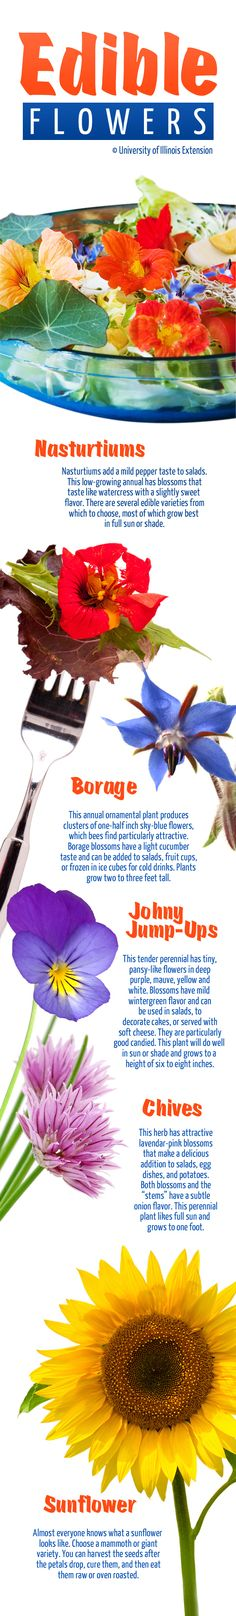 Here are 5 common, edible flowers! Great for adding interest, flavor, & color to salads.